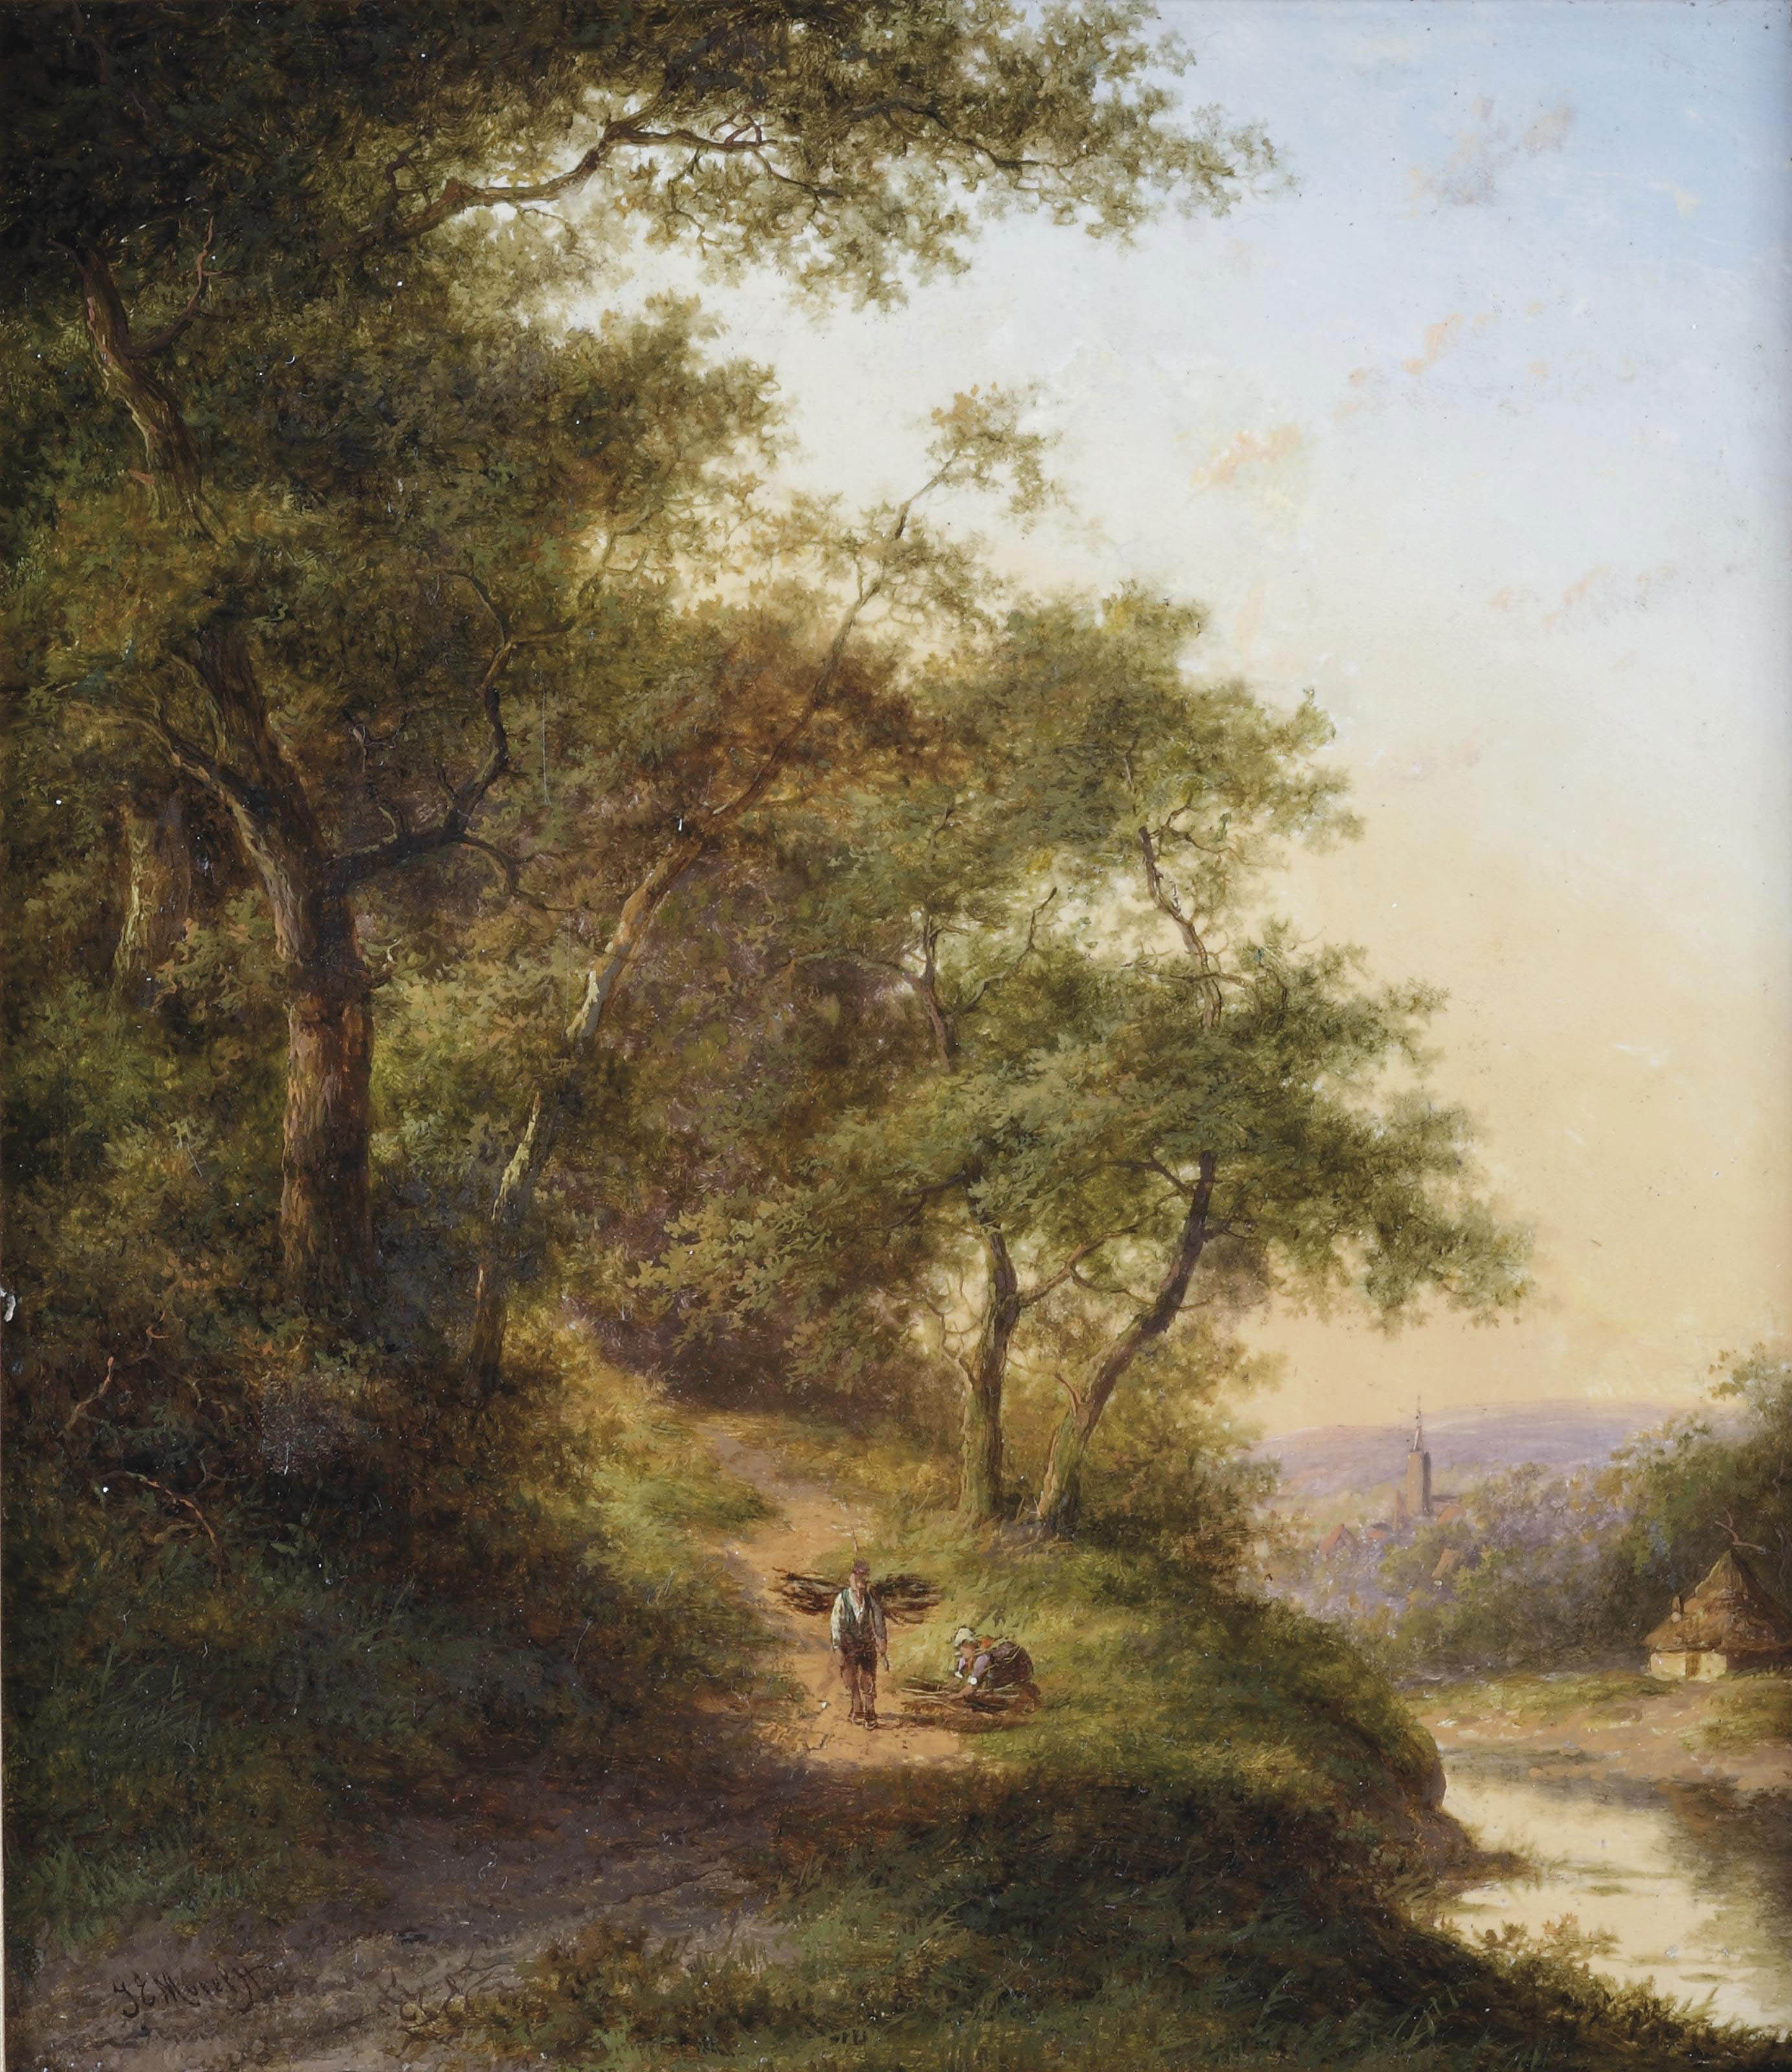 The wood gatherers near a river